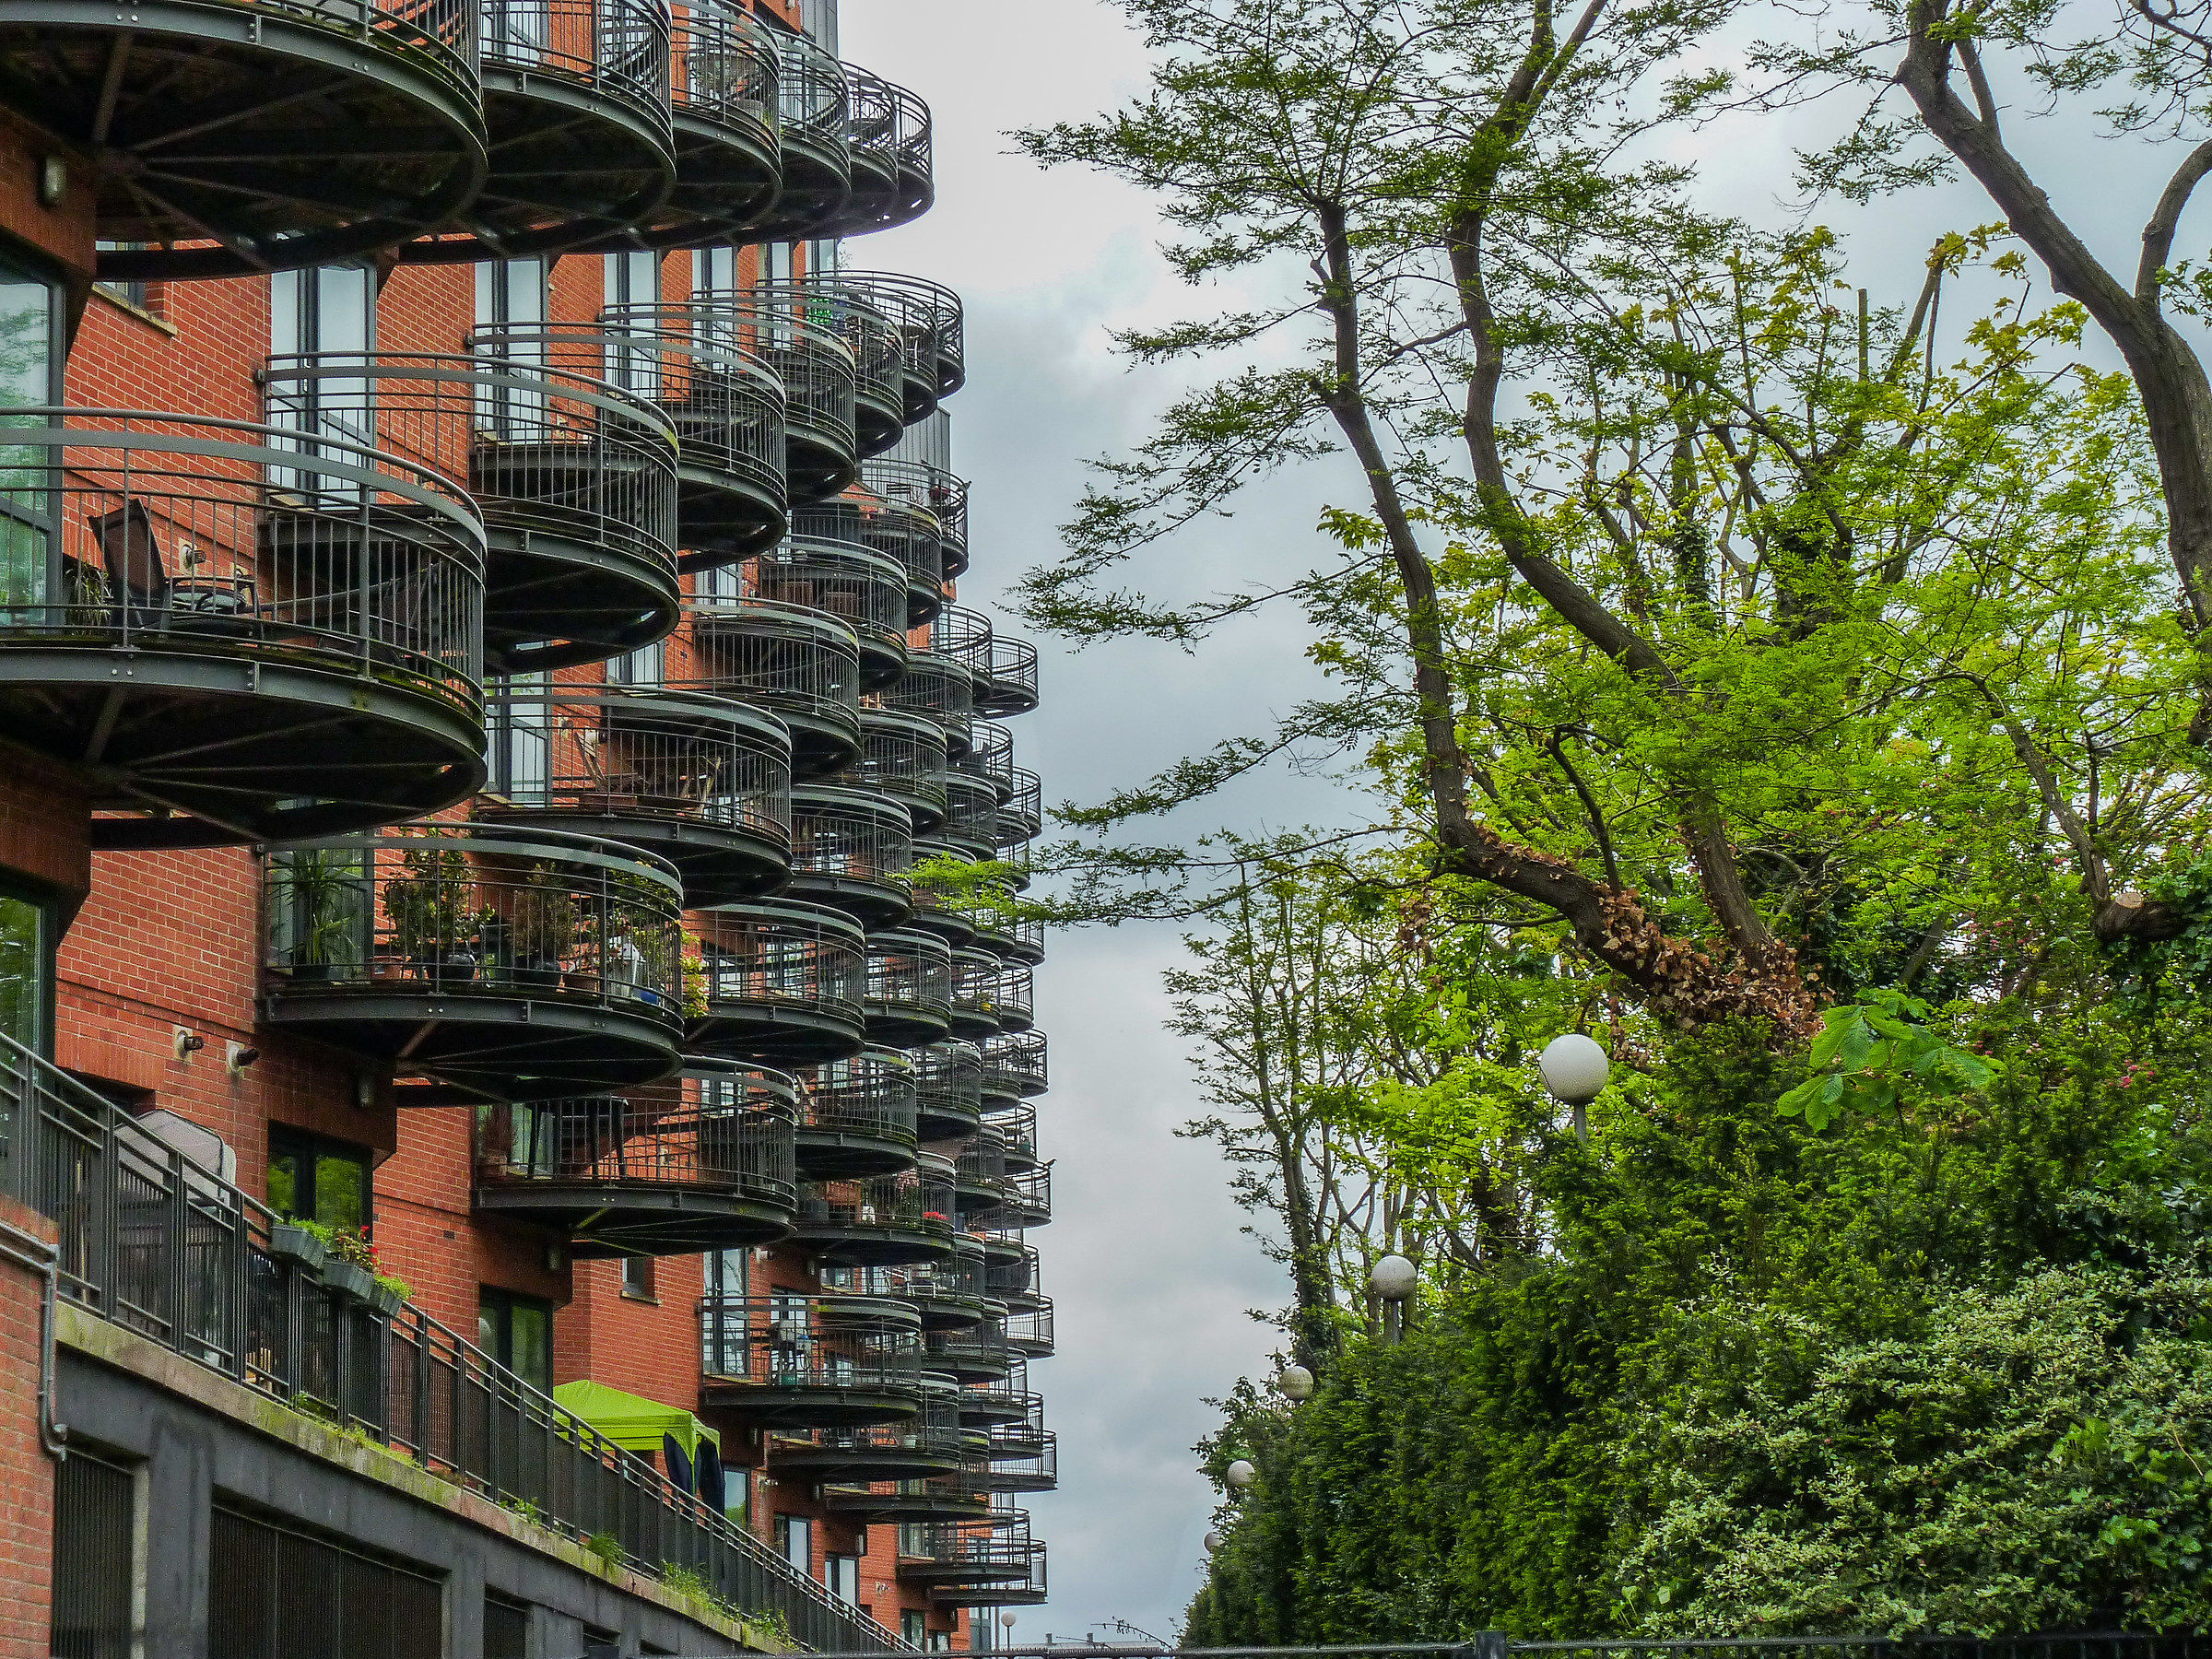 balconies or cages?...